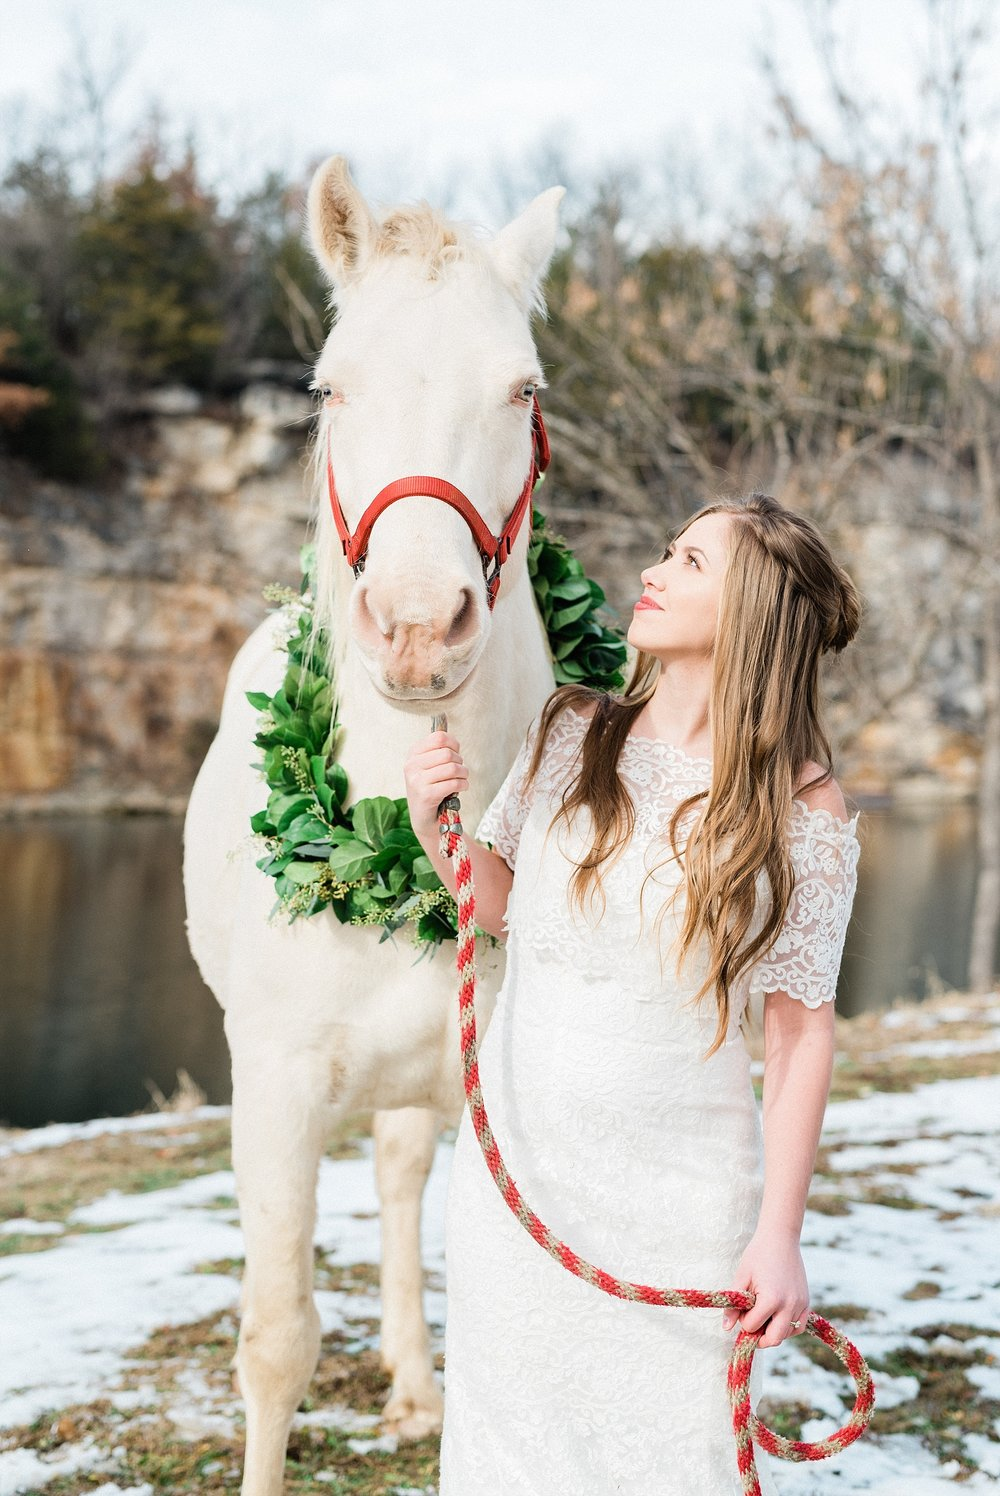 Snowy Winter Wedding at Wildcliff Events Lake With Earthy Jewel Tones and Organic Refined Style by Kelsi Kliethermes Photography Kansas City Missouri Wedding Photographer_0132.jpg